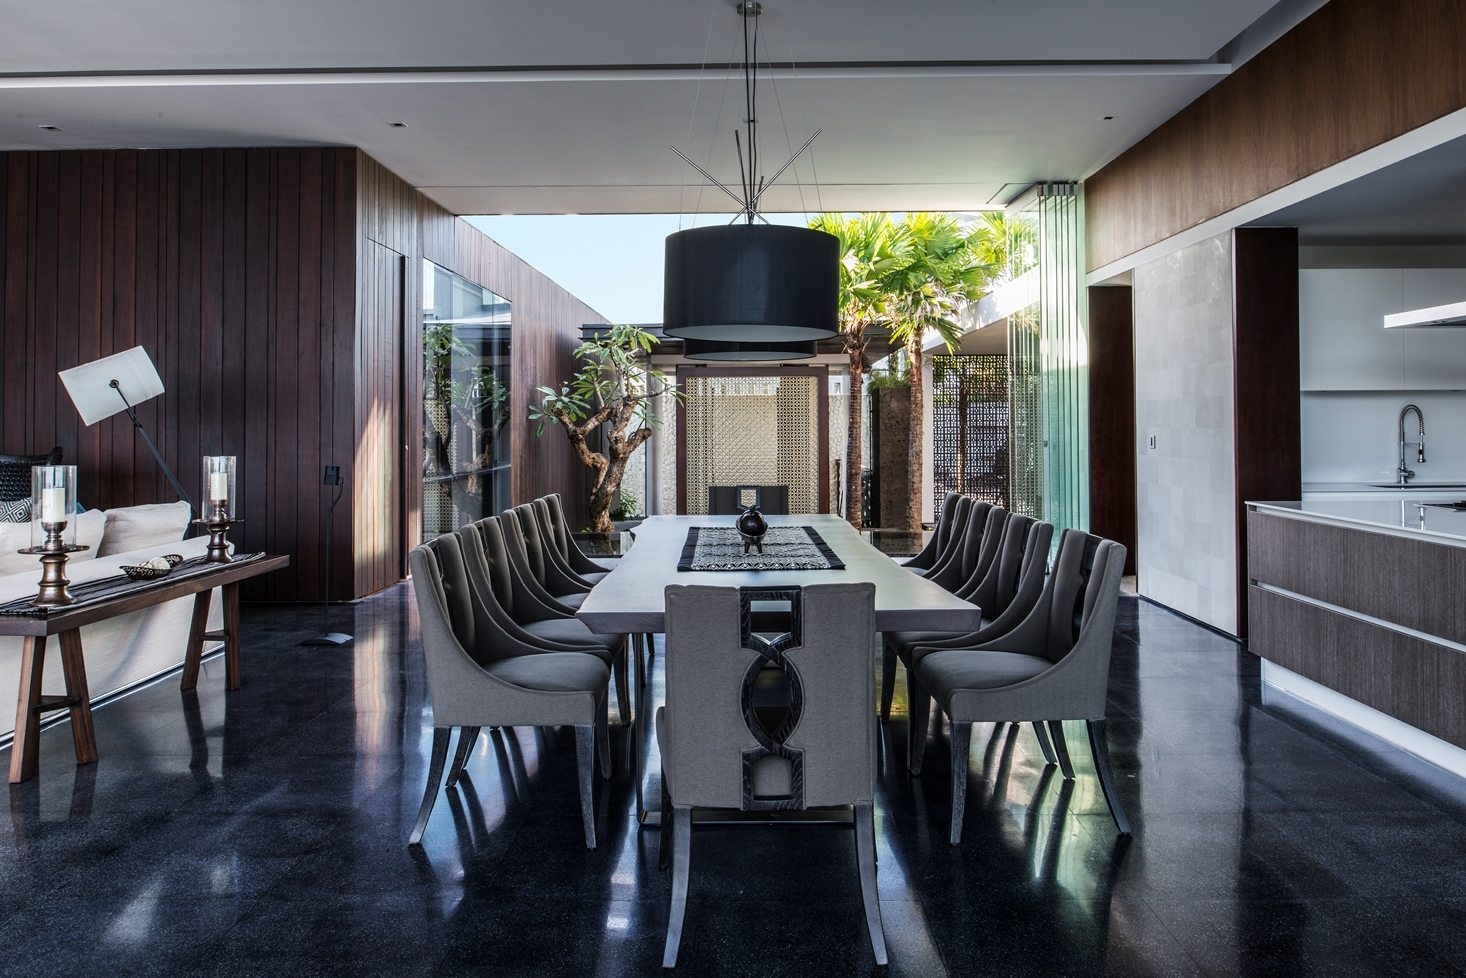 Modern Decor Ideas For Homes: Modern Resort Villa With Balinese Theme